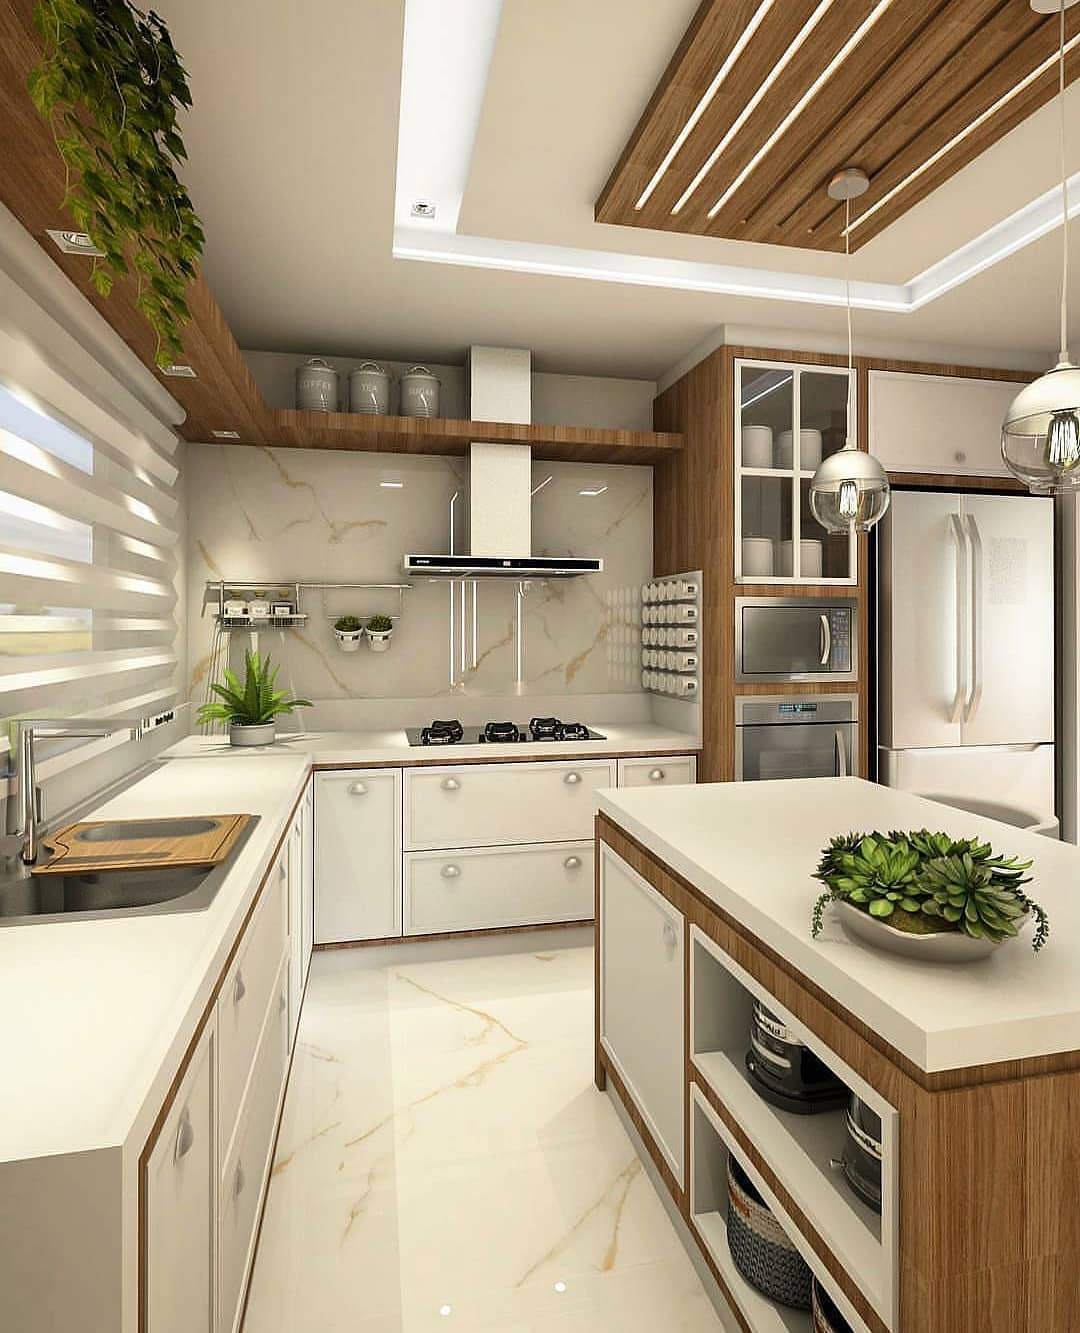 Kitchen Cabinet Ideas 2020: Top Trends and Colors for ... on Modern Kitchens  id=66094